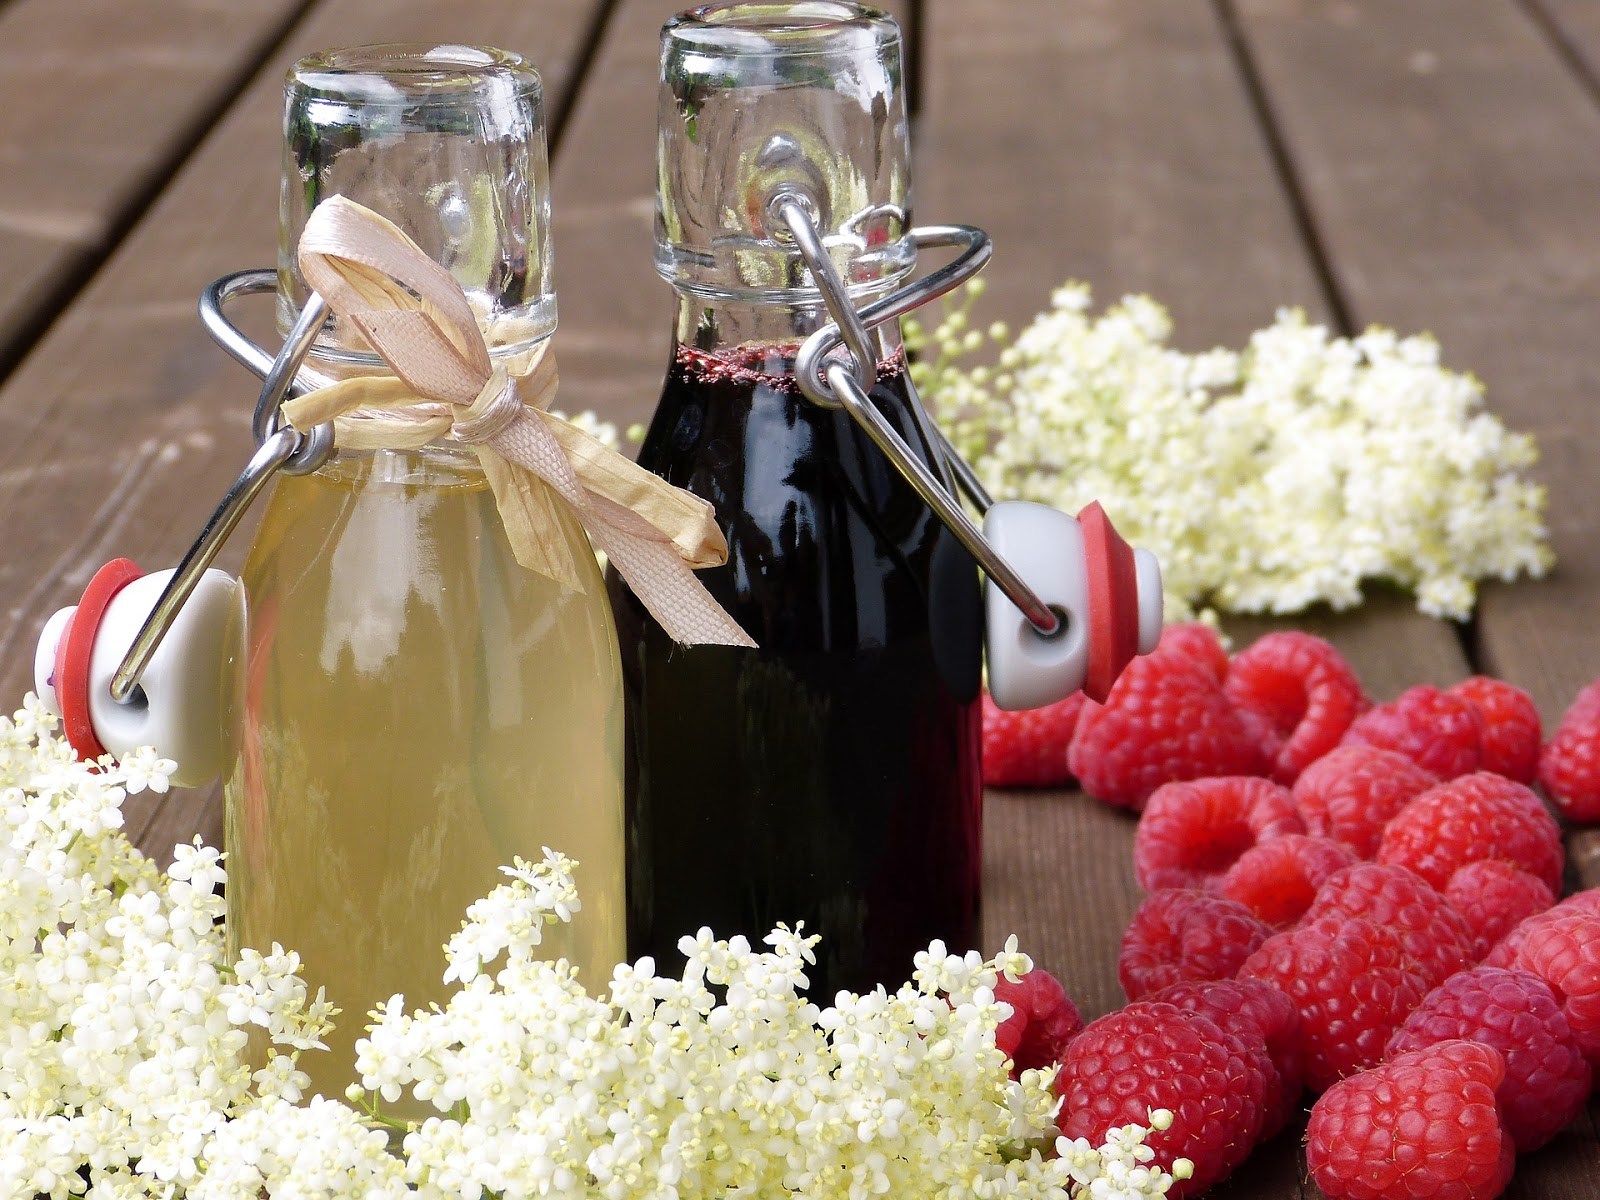 jars of syrup made from fruits